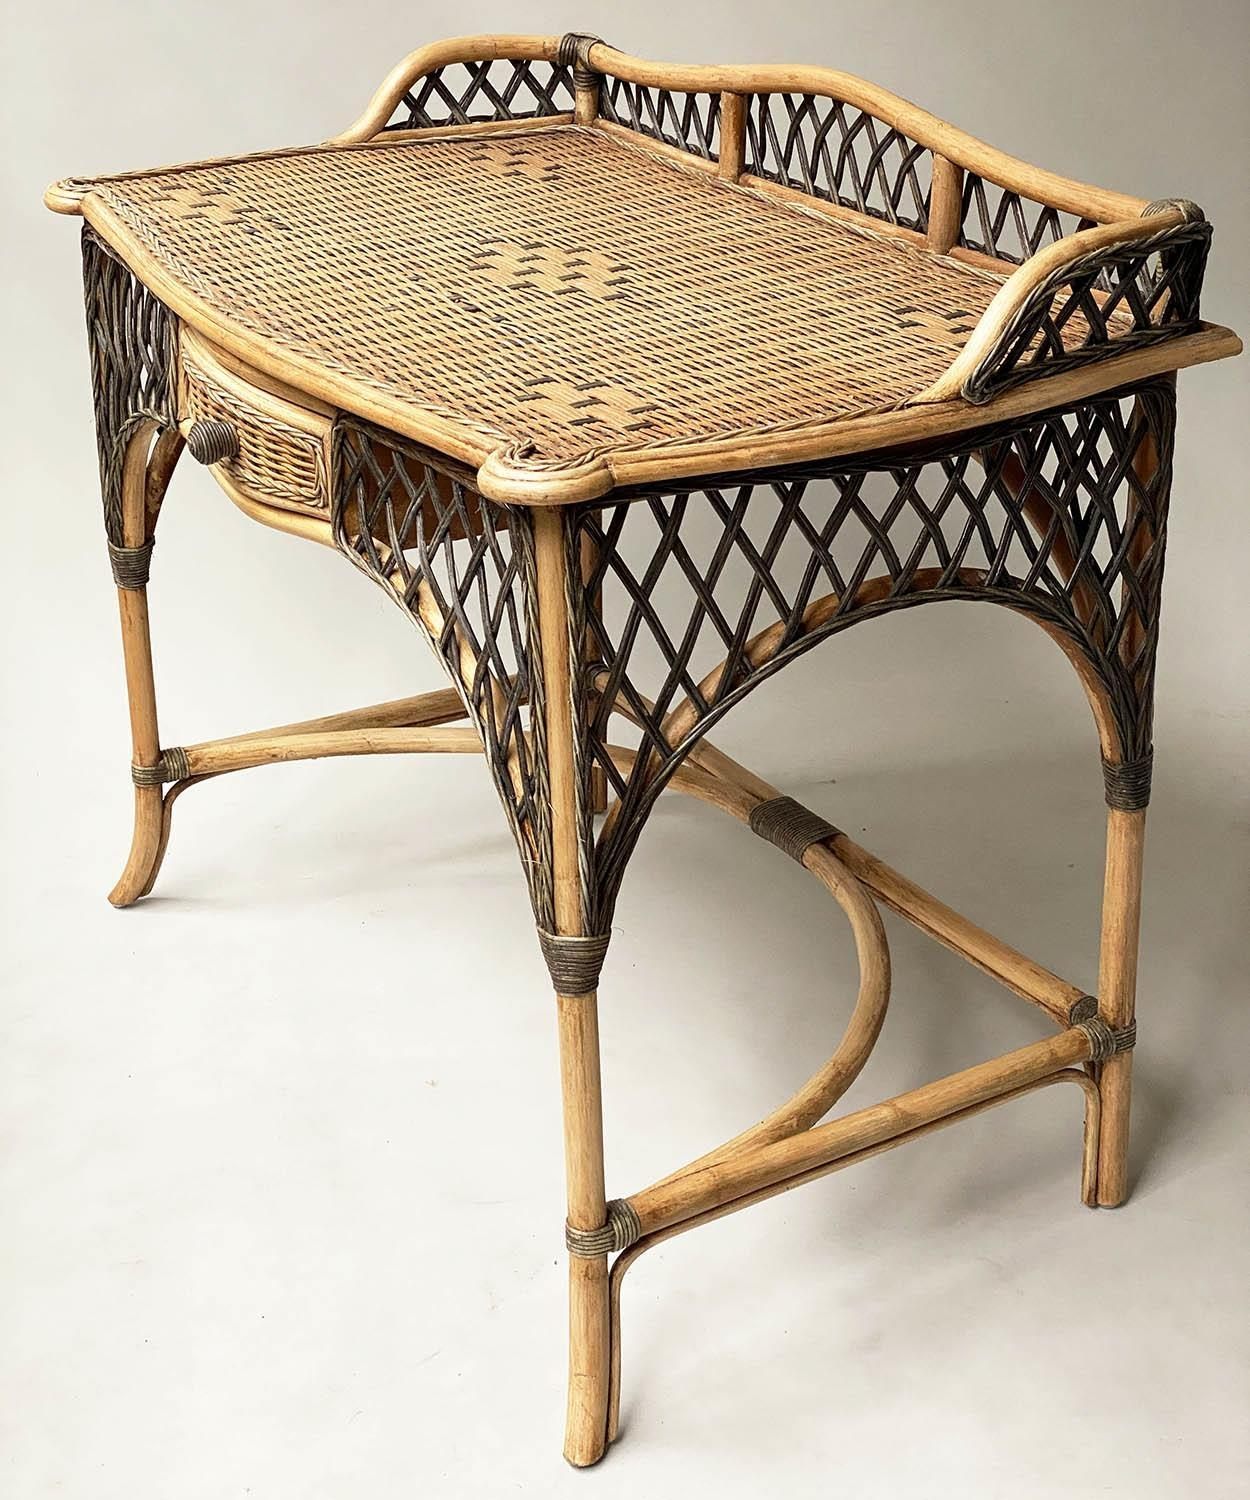 SIDE/WRITING TABLE, vintage Ralph Lauren style two tone rattan with gallery and frieze drawer, 103cm - Image 5 of 6